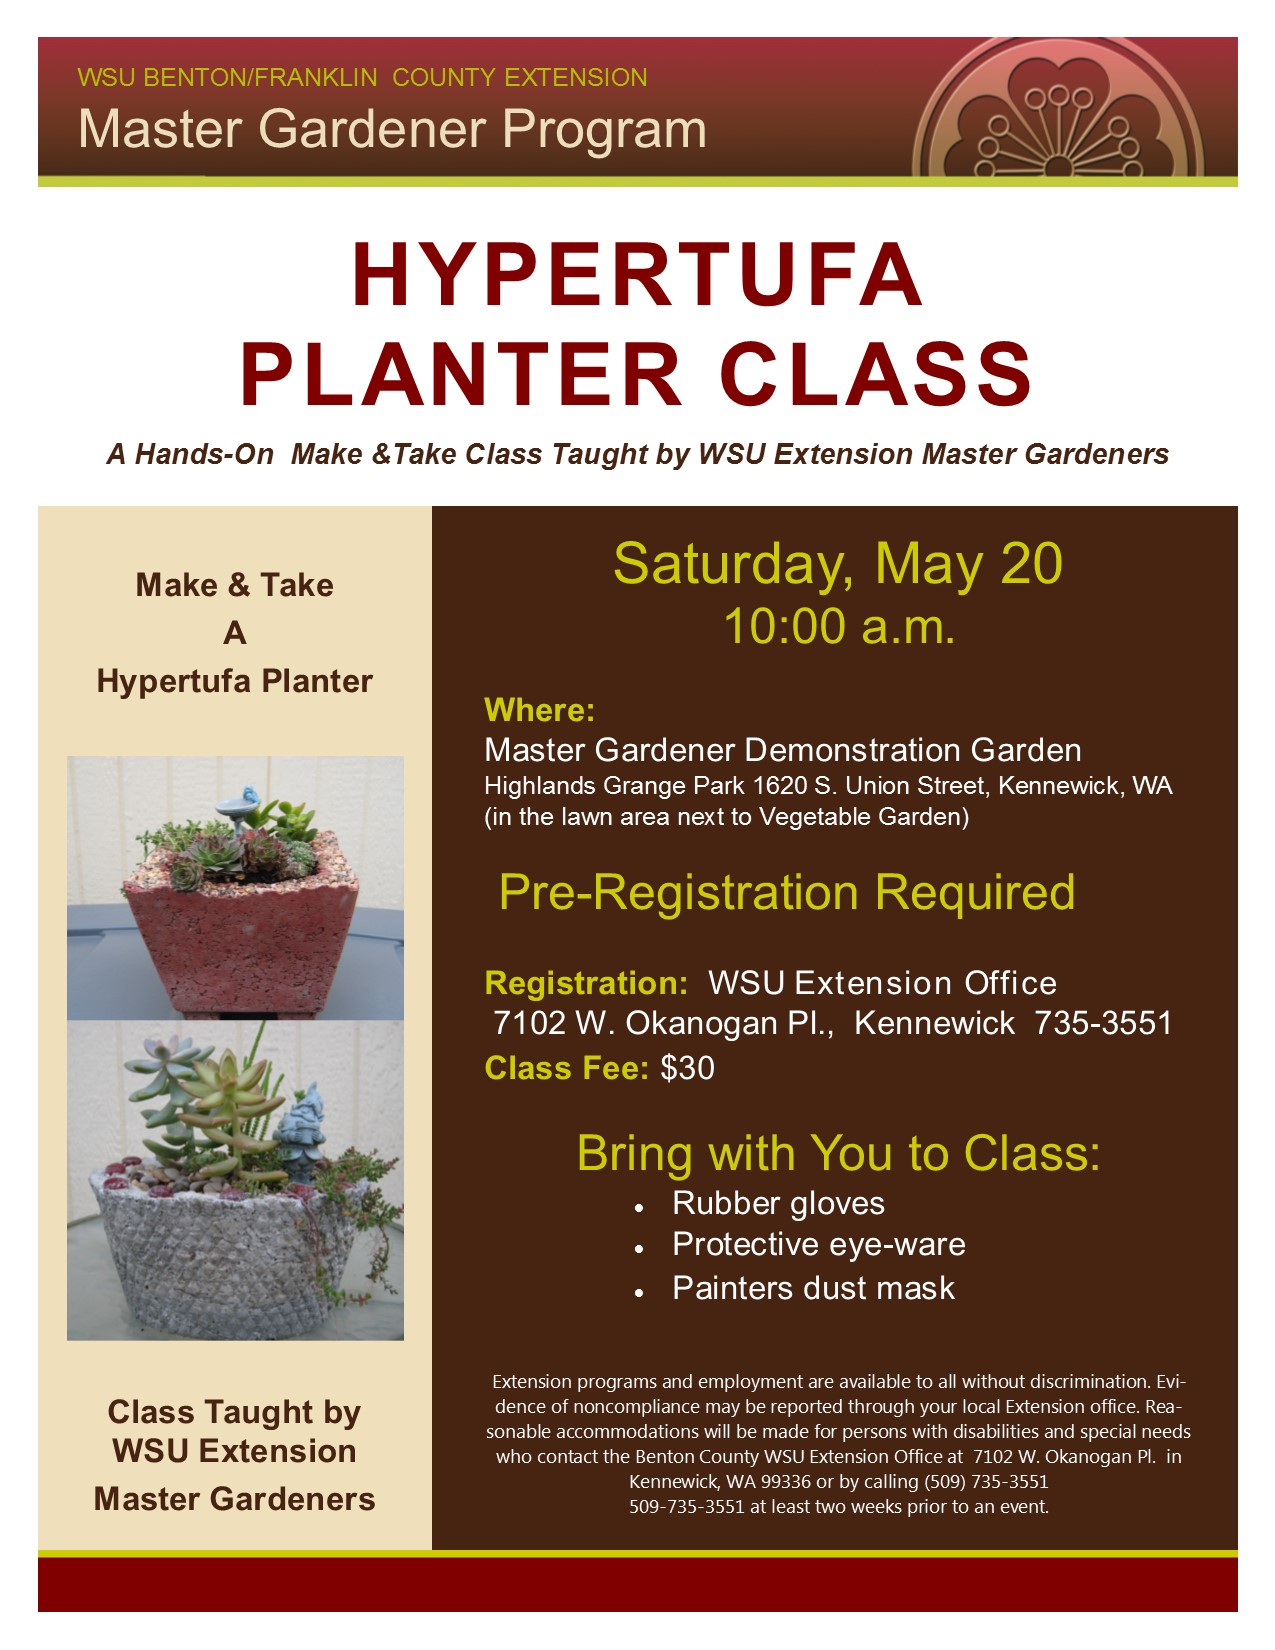 HYPERTUFA PLANTER CLASS A Hands-On Make &Take Class Taught by WSU Extension Master Gardeners WSU BENTON/FRANKLIN COUNTY EXTENSION Master Gardener Program Saturday, May 20 10:00 a.m. Where: Master Gardener Demonstration Garden Highlands Grange Park 1620 S. Union Street, Kennewick, WA (in the lawn area next to Vegetable Garden) Pre-Registration Required Registration at: WSU Extension Office 7102 W. Okanogan Pl., Kennewick 735-3551 Class Fee: $30 Bring with You to Class:  Rubber gloves  Protective eye-ware  Painters dust mask Extension programs and employment are available to all without discrimination. Evidence of non-compliance may be reported through your local Extension office. Reasonable accommodations will be made for persons with disabilities and special needs who contact the Benton County WSU Extension Office at 7102 W. Okanogan Pl. in Kennewick, WA 99336 or by calling (509) 735-3551 at least two weeks prior to an event. Make & Take A Hypertufa Planter Class Taught by WSU Extension Master Gardeners